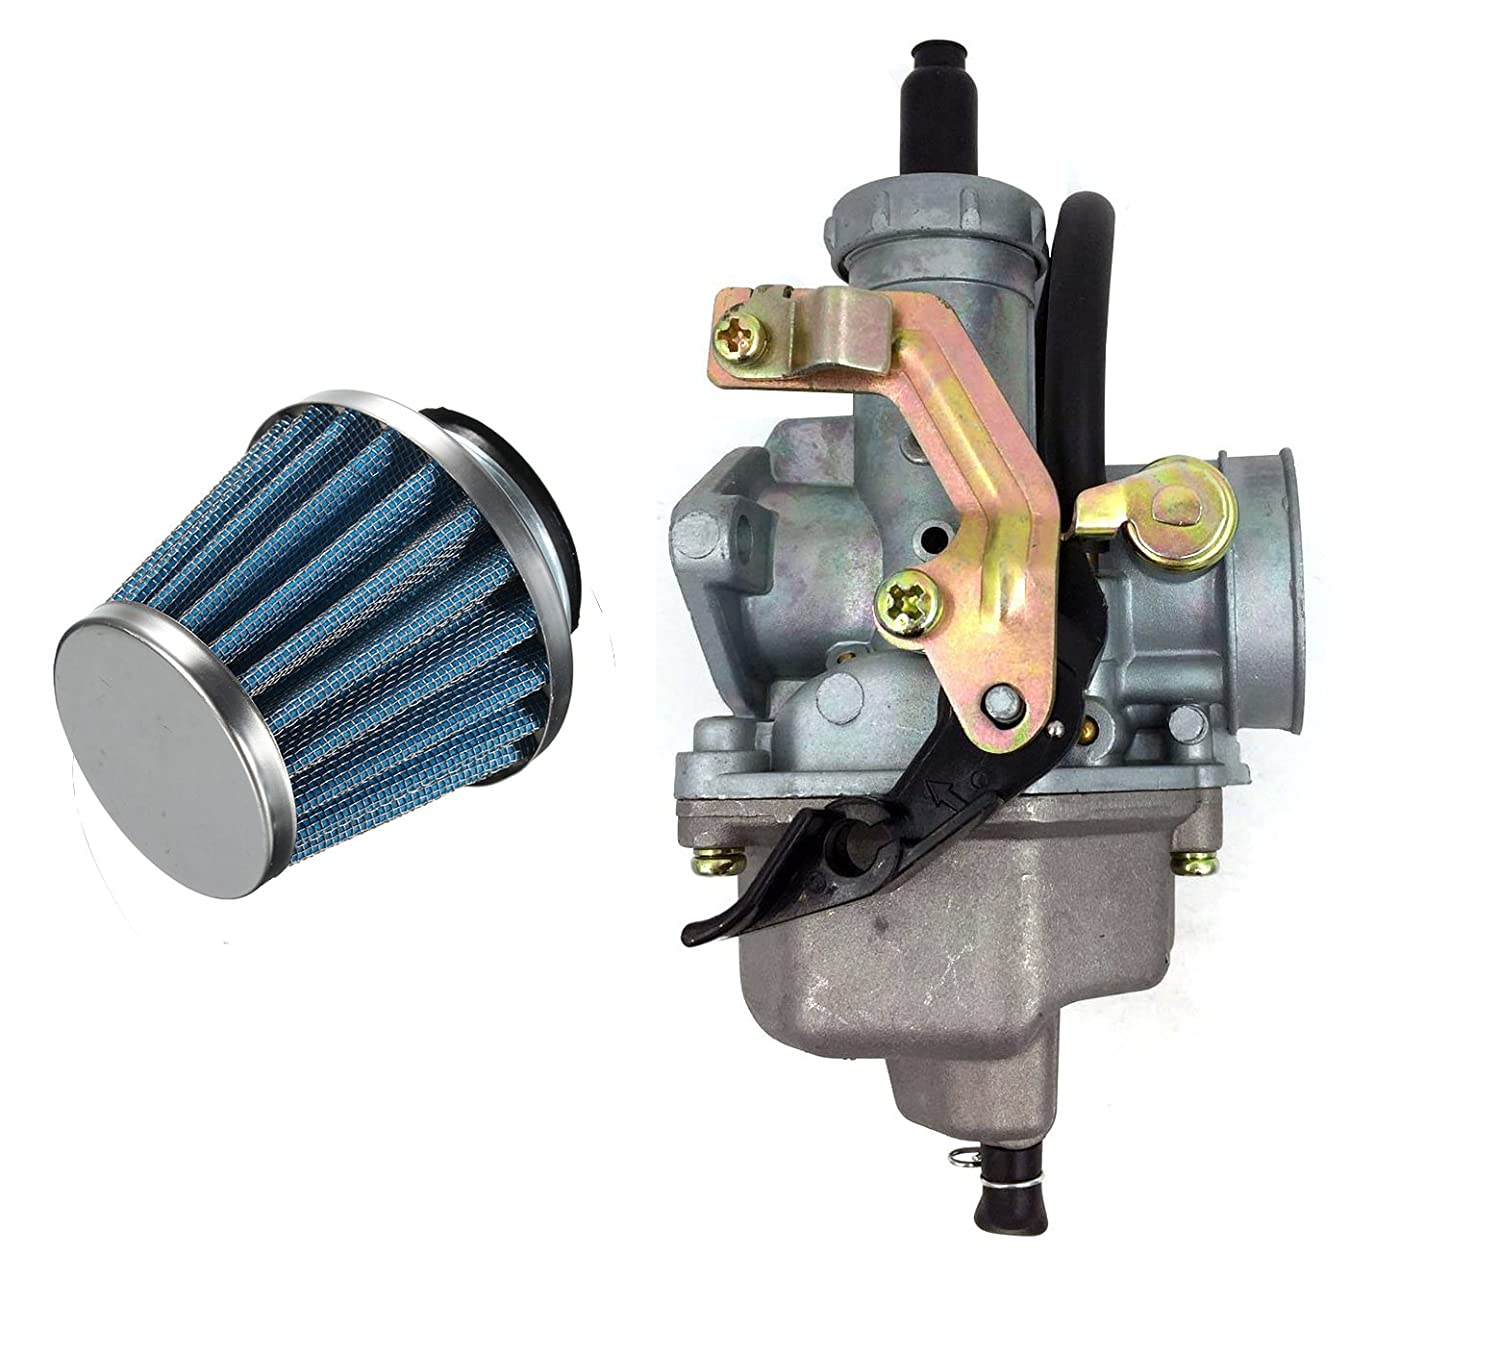 Carburetor /& Air Filter Fits HONDA ATC200M ATC 200 M 1984-1985 NEW Carb Fits: ATC200M